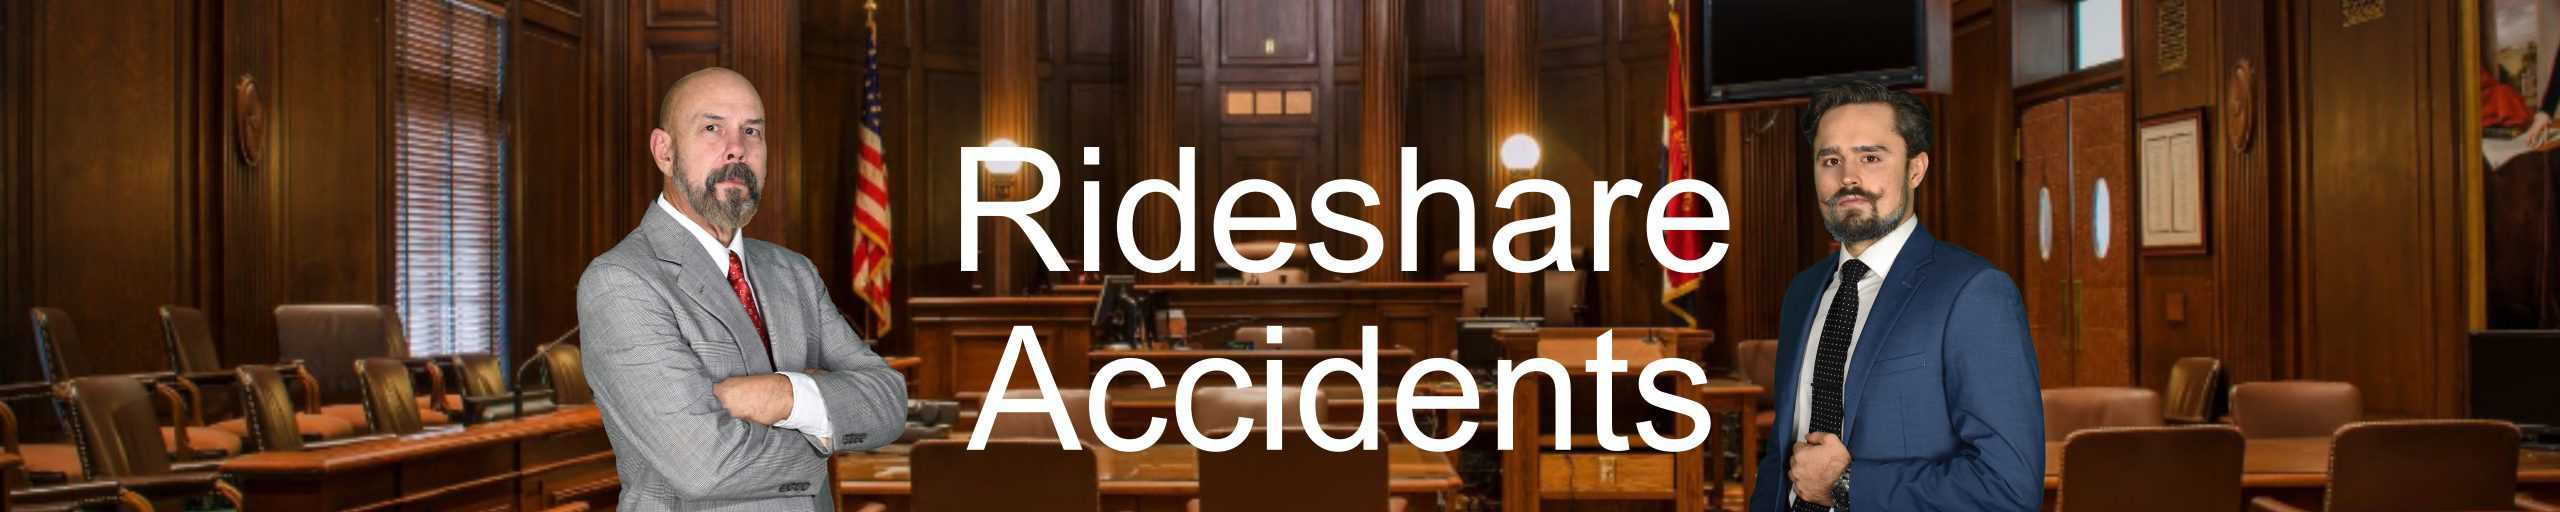 Rideshare-Accidents-Personal-Injury-Attorney-Lawyer-Hurt-Broken-Rear-End-Money-Settlement-Hospital-ER-Damage-Insurance-Company